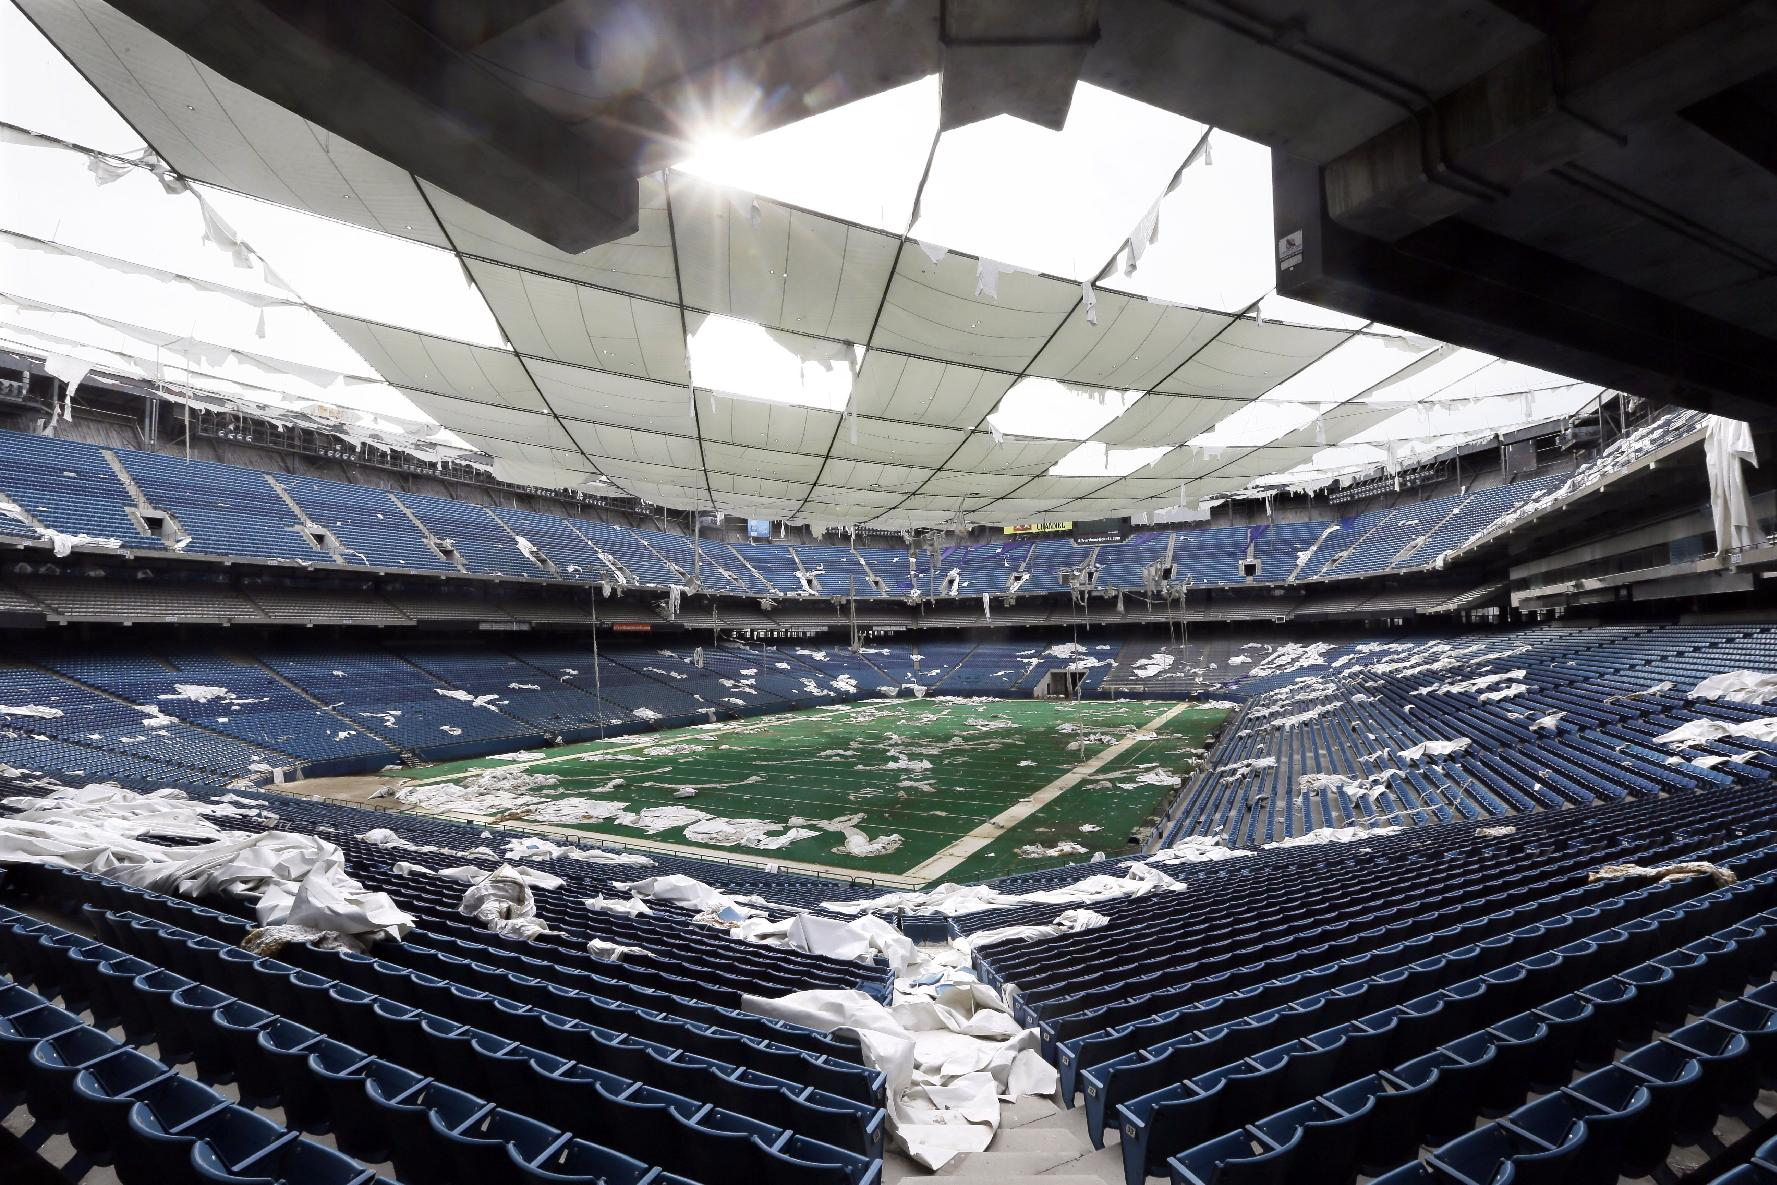 In this May 12, 2014 file photo, the interior of the Pontiac Silverdome, former home of the NFL football Detroit Lions, is seen in Pontiac, Mich. An auction featuring more than 3,000 leftover items in the Pontiac Silverdome has fetched about $500,000. Items up for sale included end-zone turf, pretzel warmers, a boxing ring, a soccer field, flat-screen televisions and scoreboards. The stadium's copper wiring sold for more than $77,000